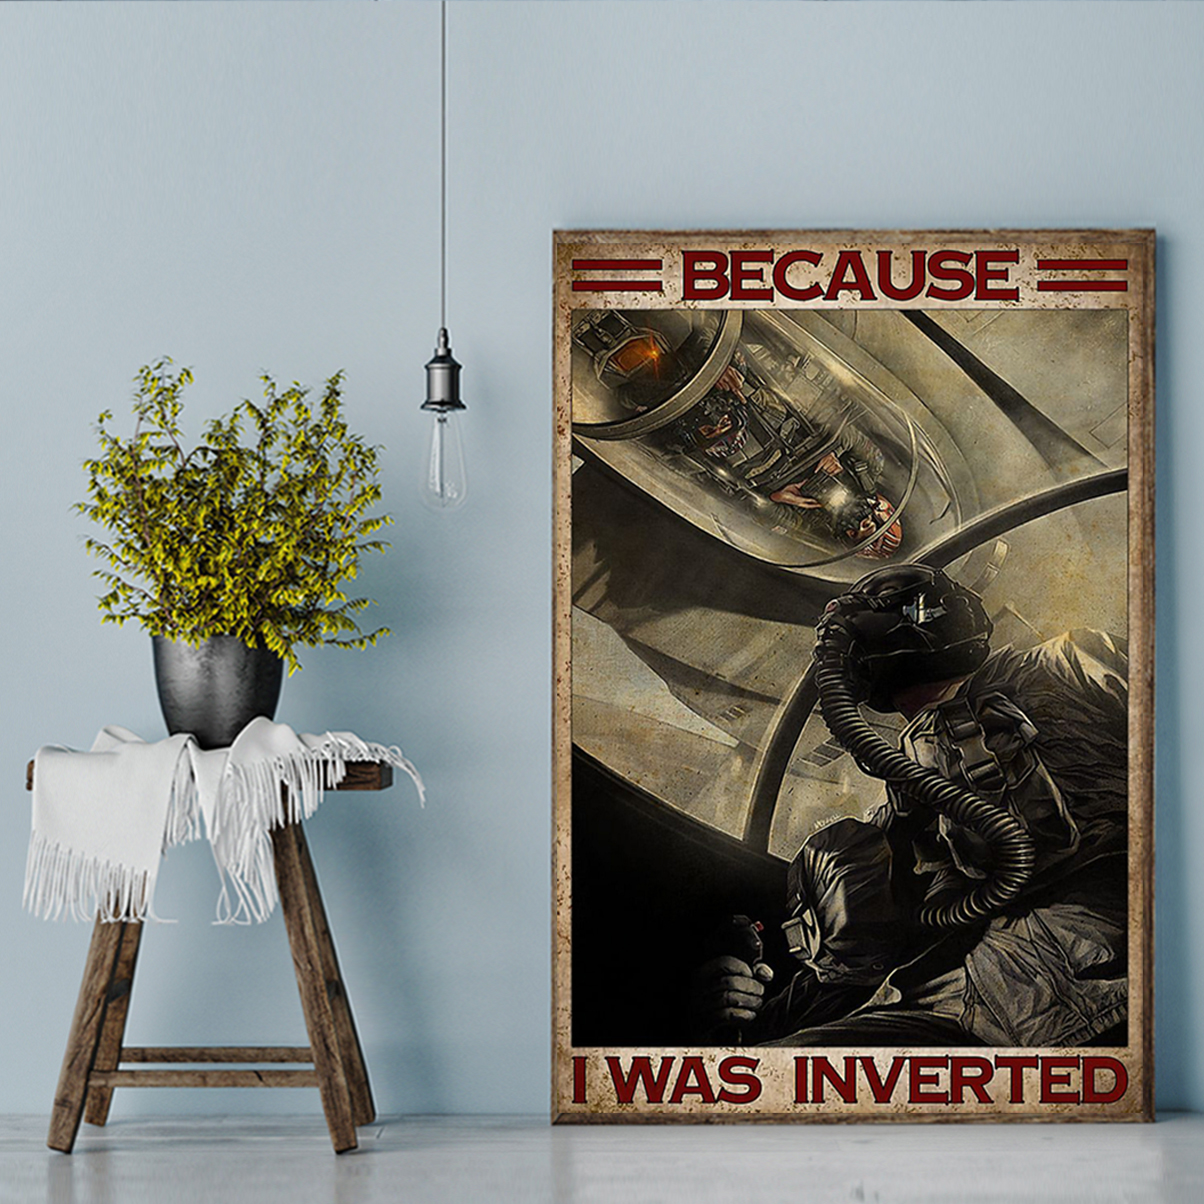 Top gun because I was inverted poTop gun because I was inverted poster A2ster A2